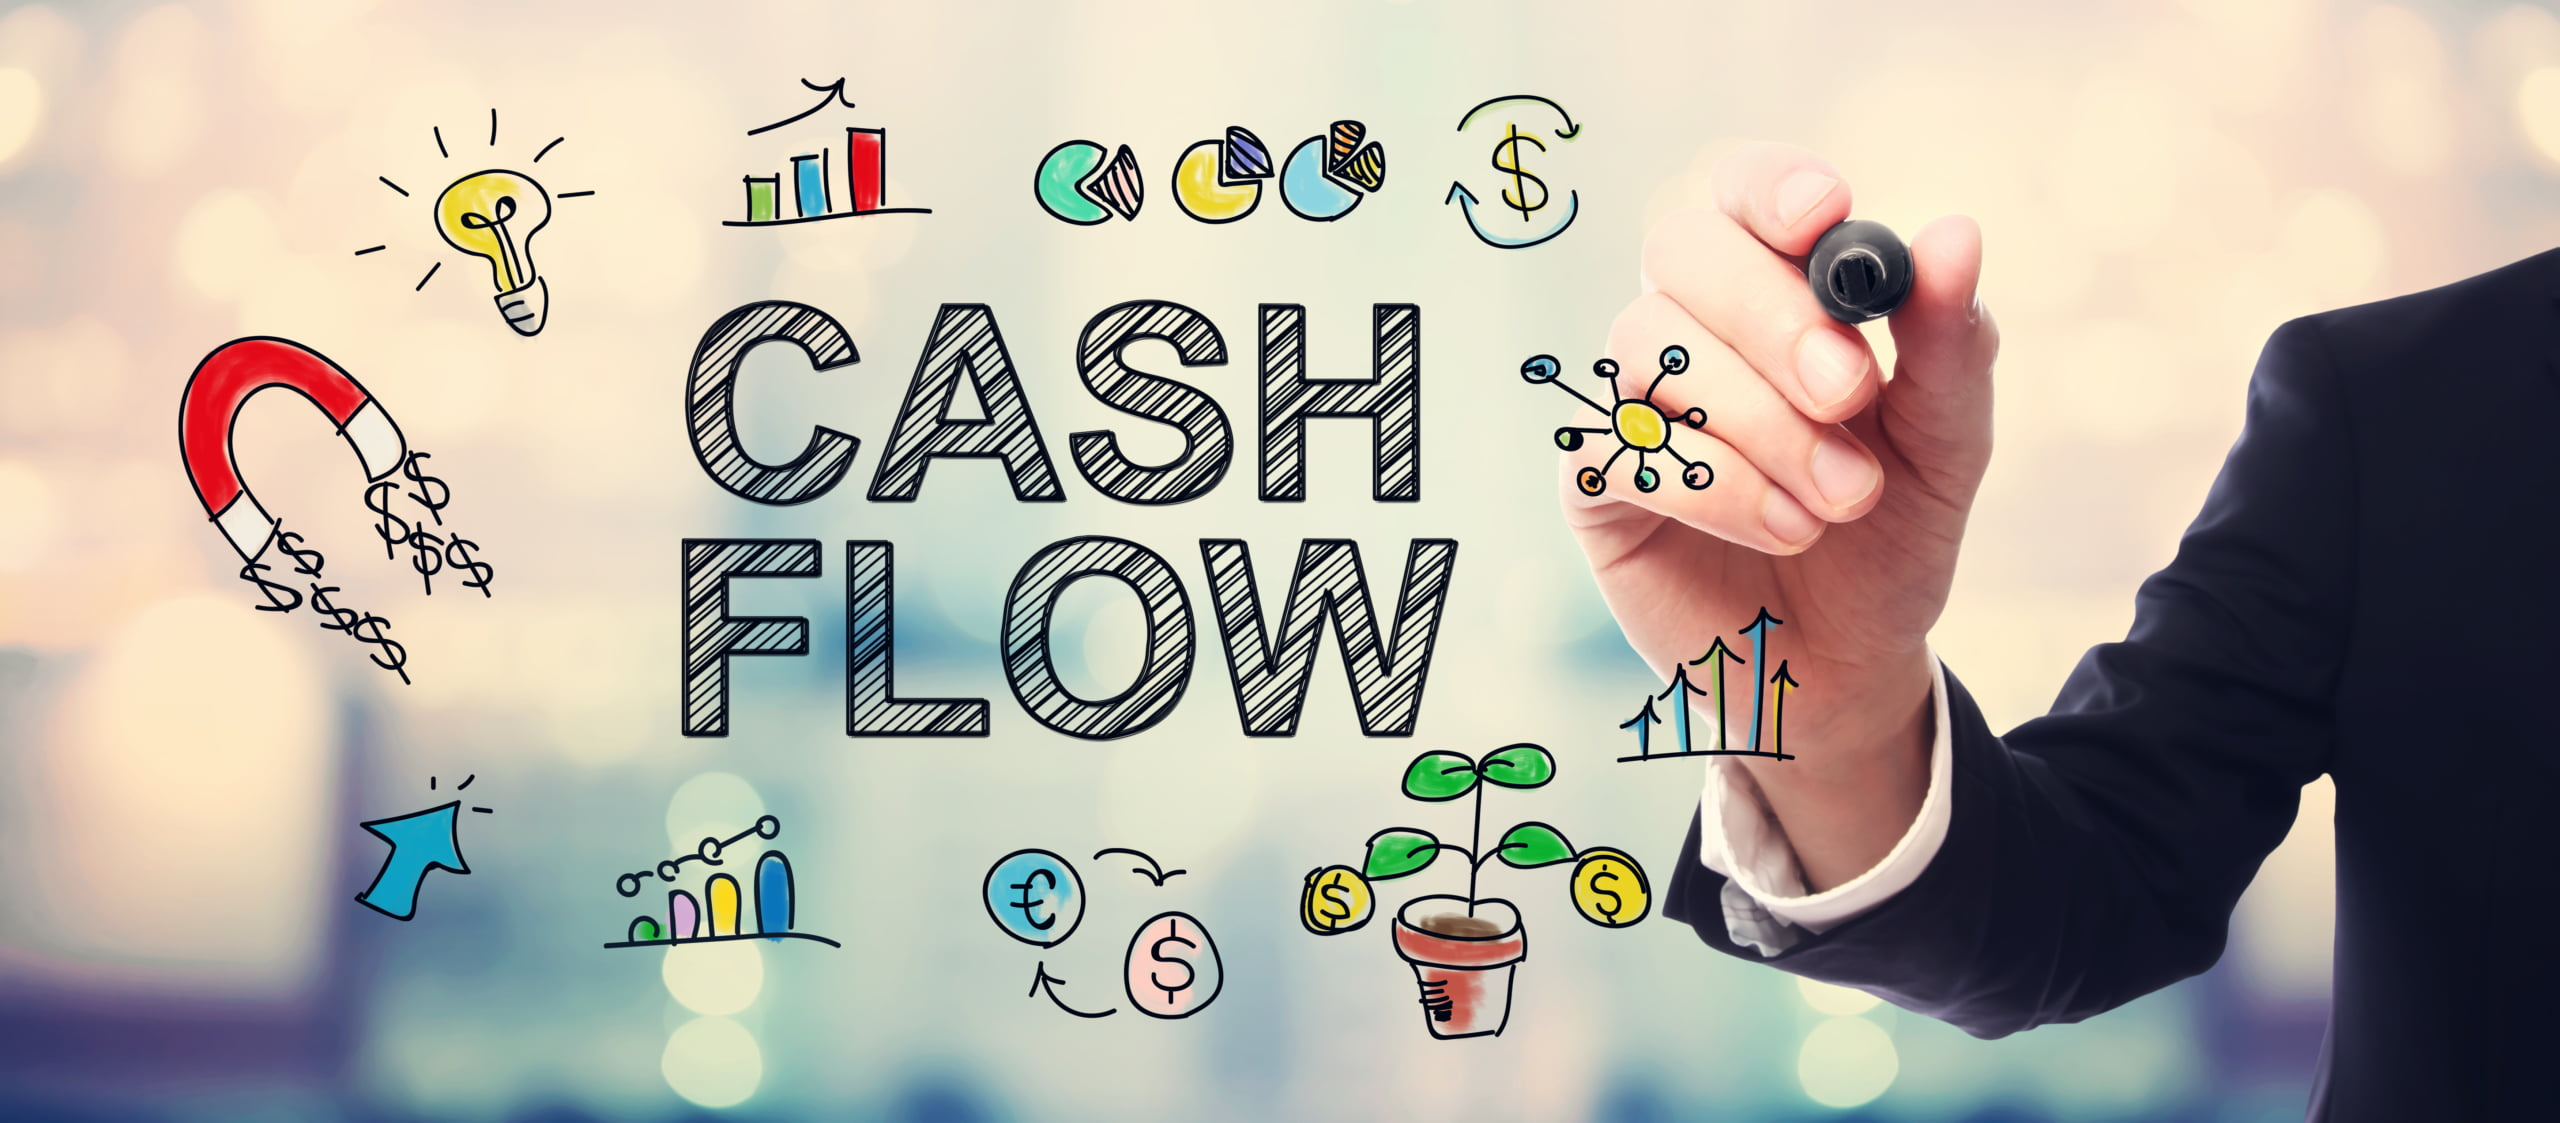 Interstate Capital: Invoice Factoring vs. Online Business Loans